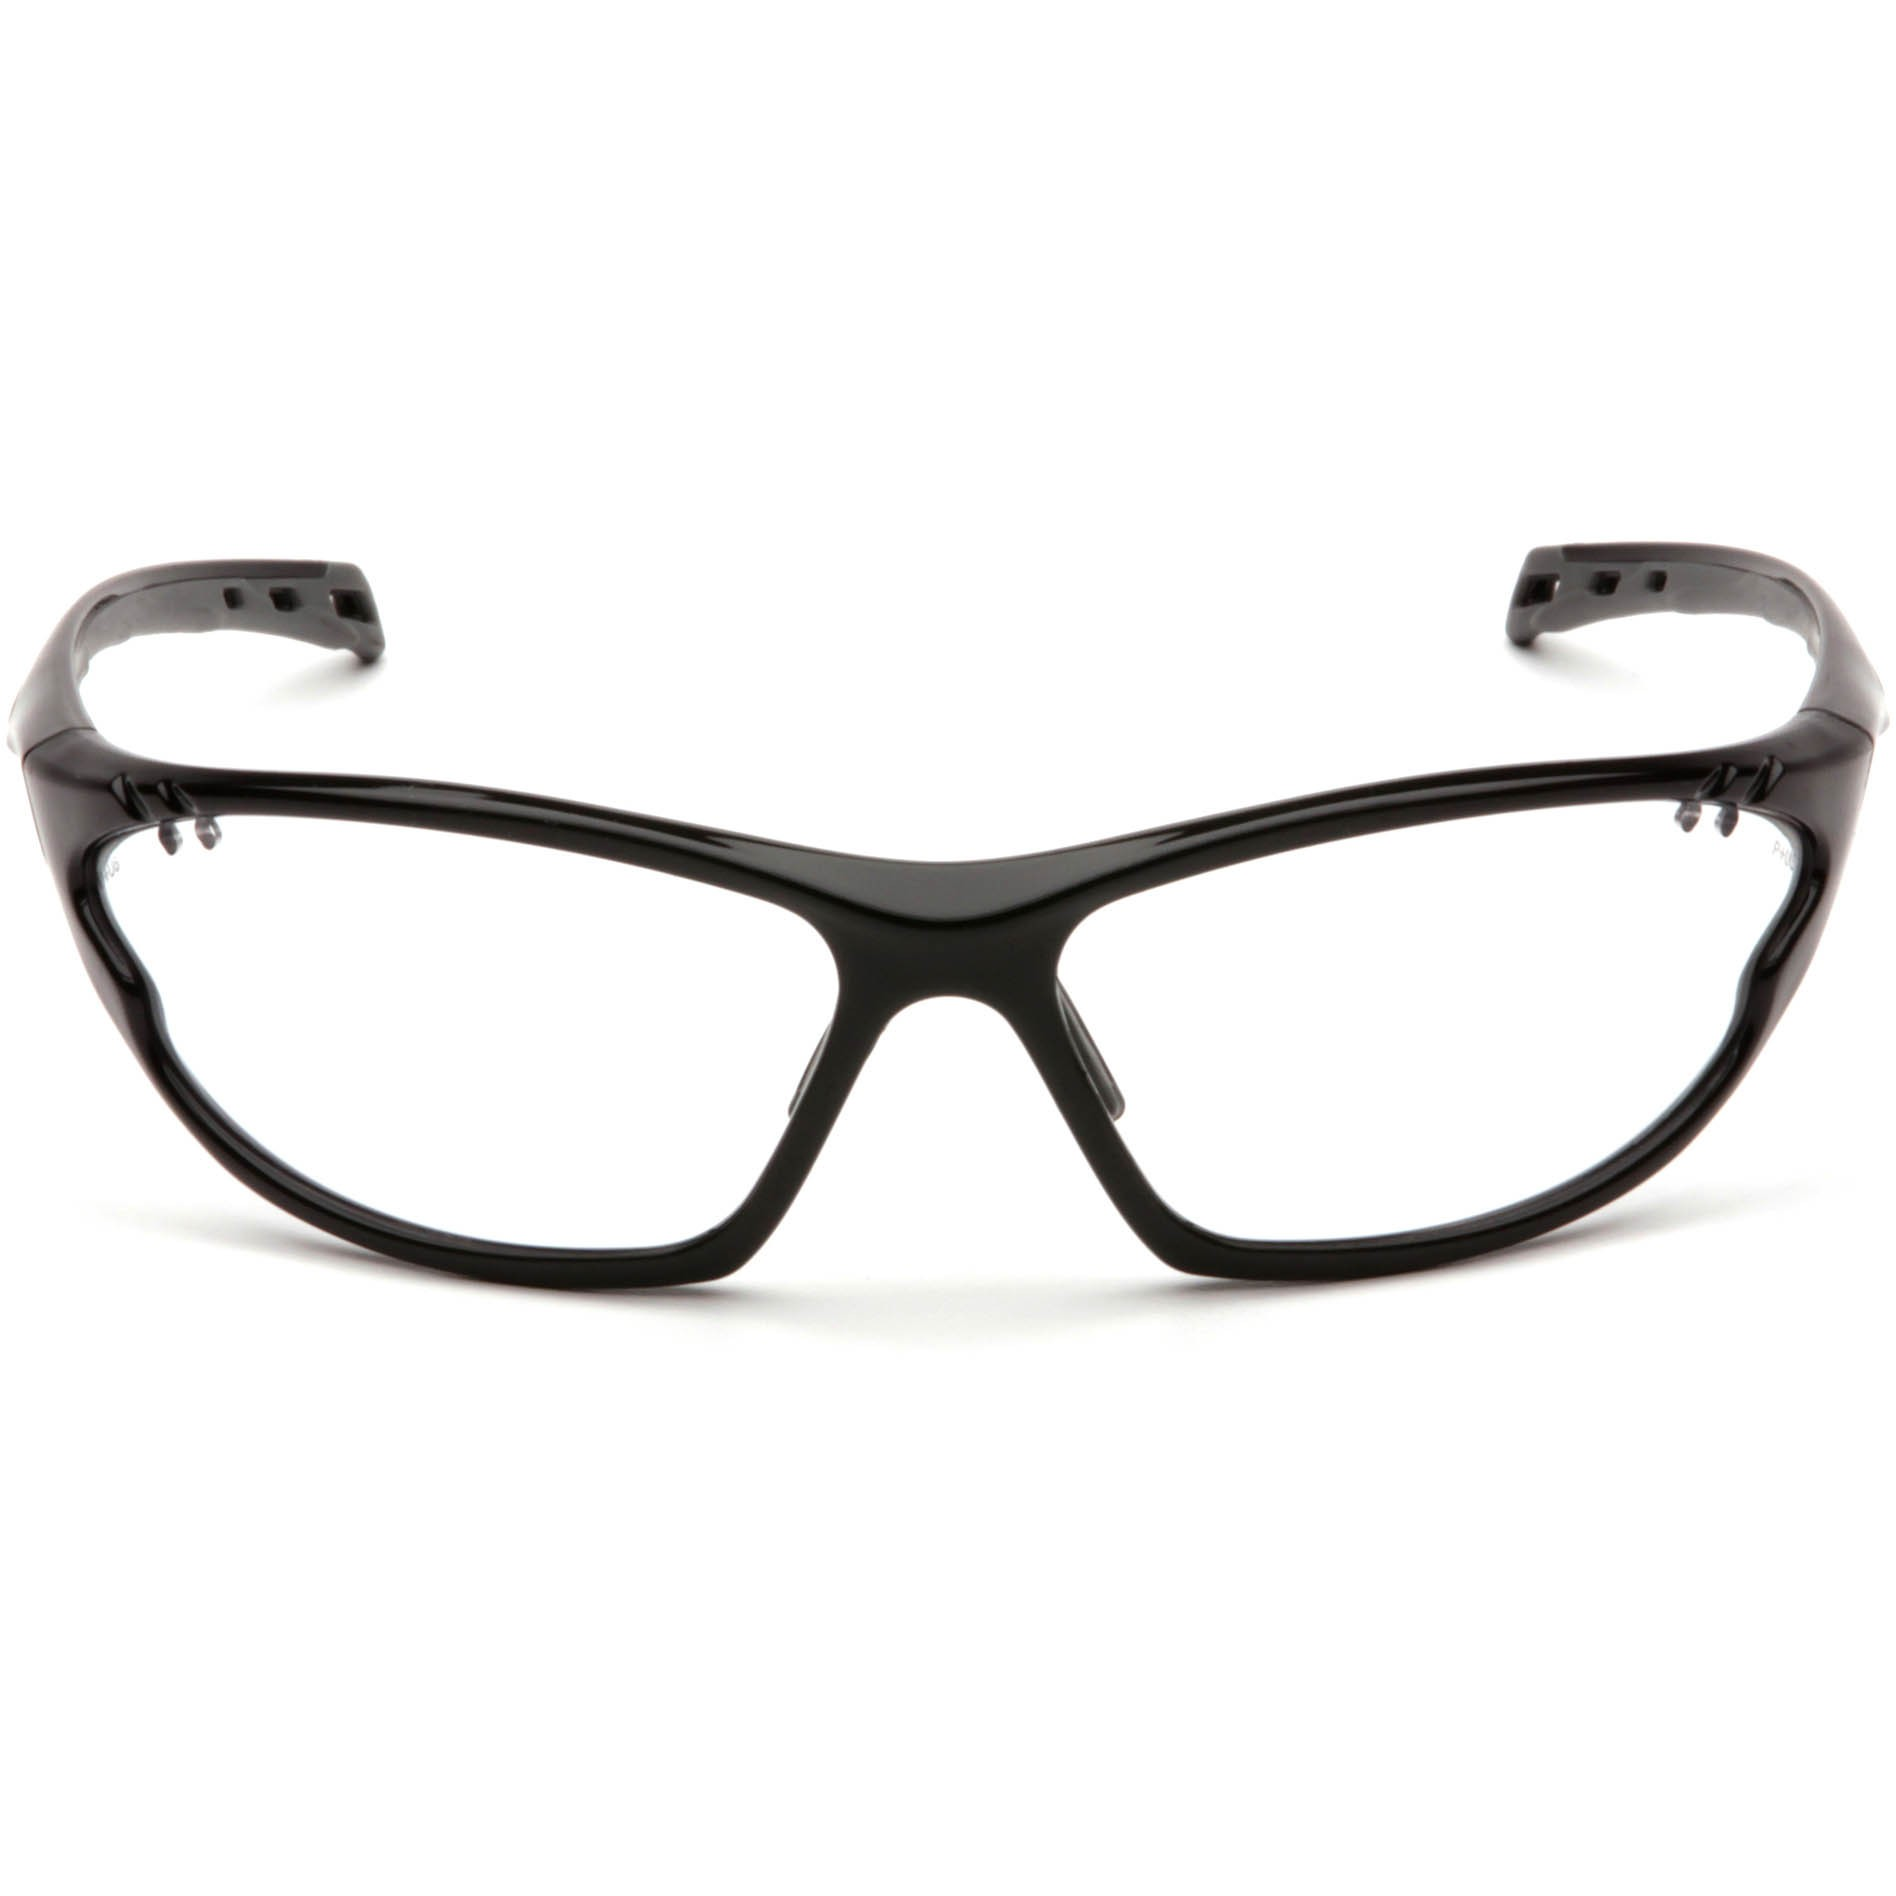 Black Frame Glasses Clear Lens : Pyramex PMXCITE Safety Glasses - Black Frame - Clear Lens ...